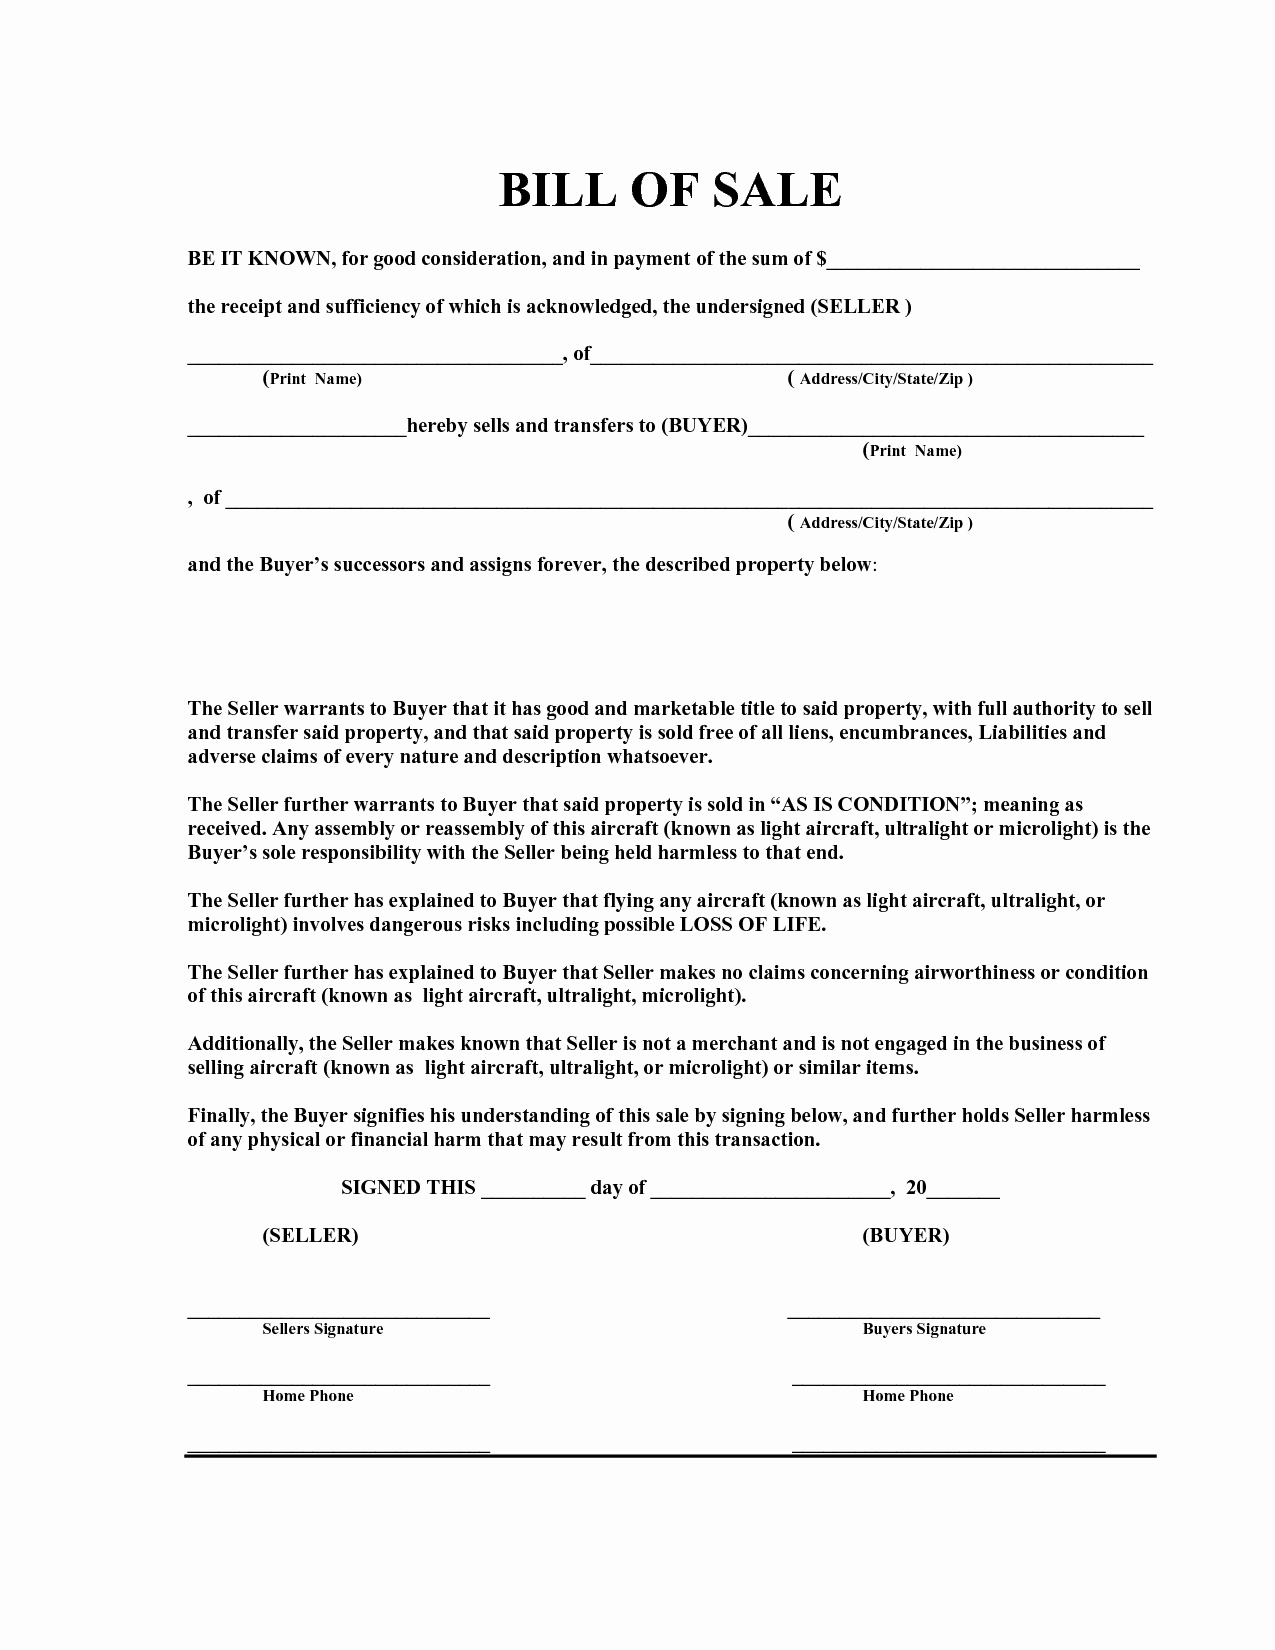 Bill Of Sale Sample Document Awesome Bill Sale Sample Document Portablegasgrillweber